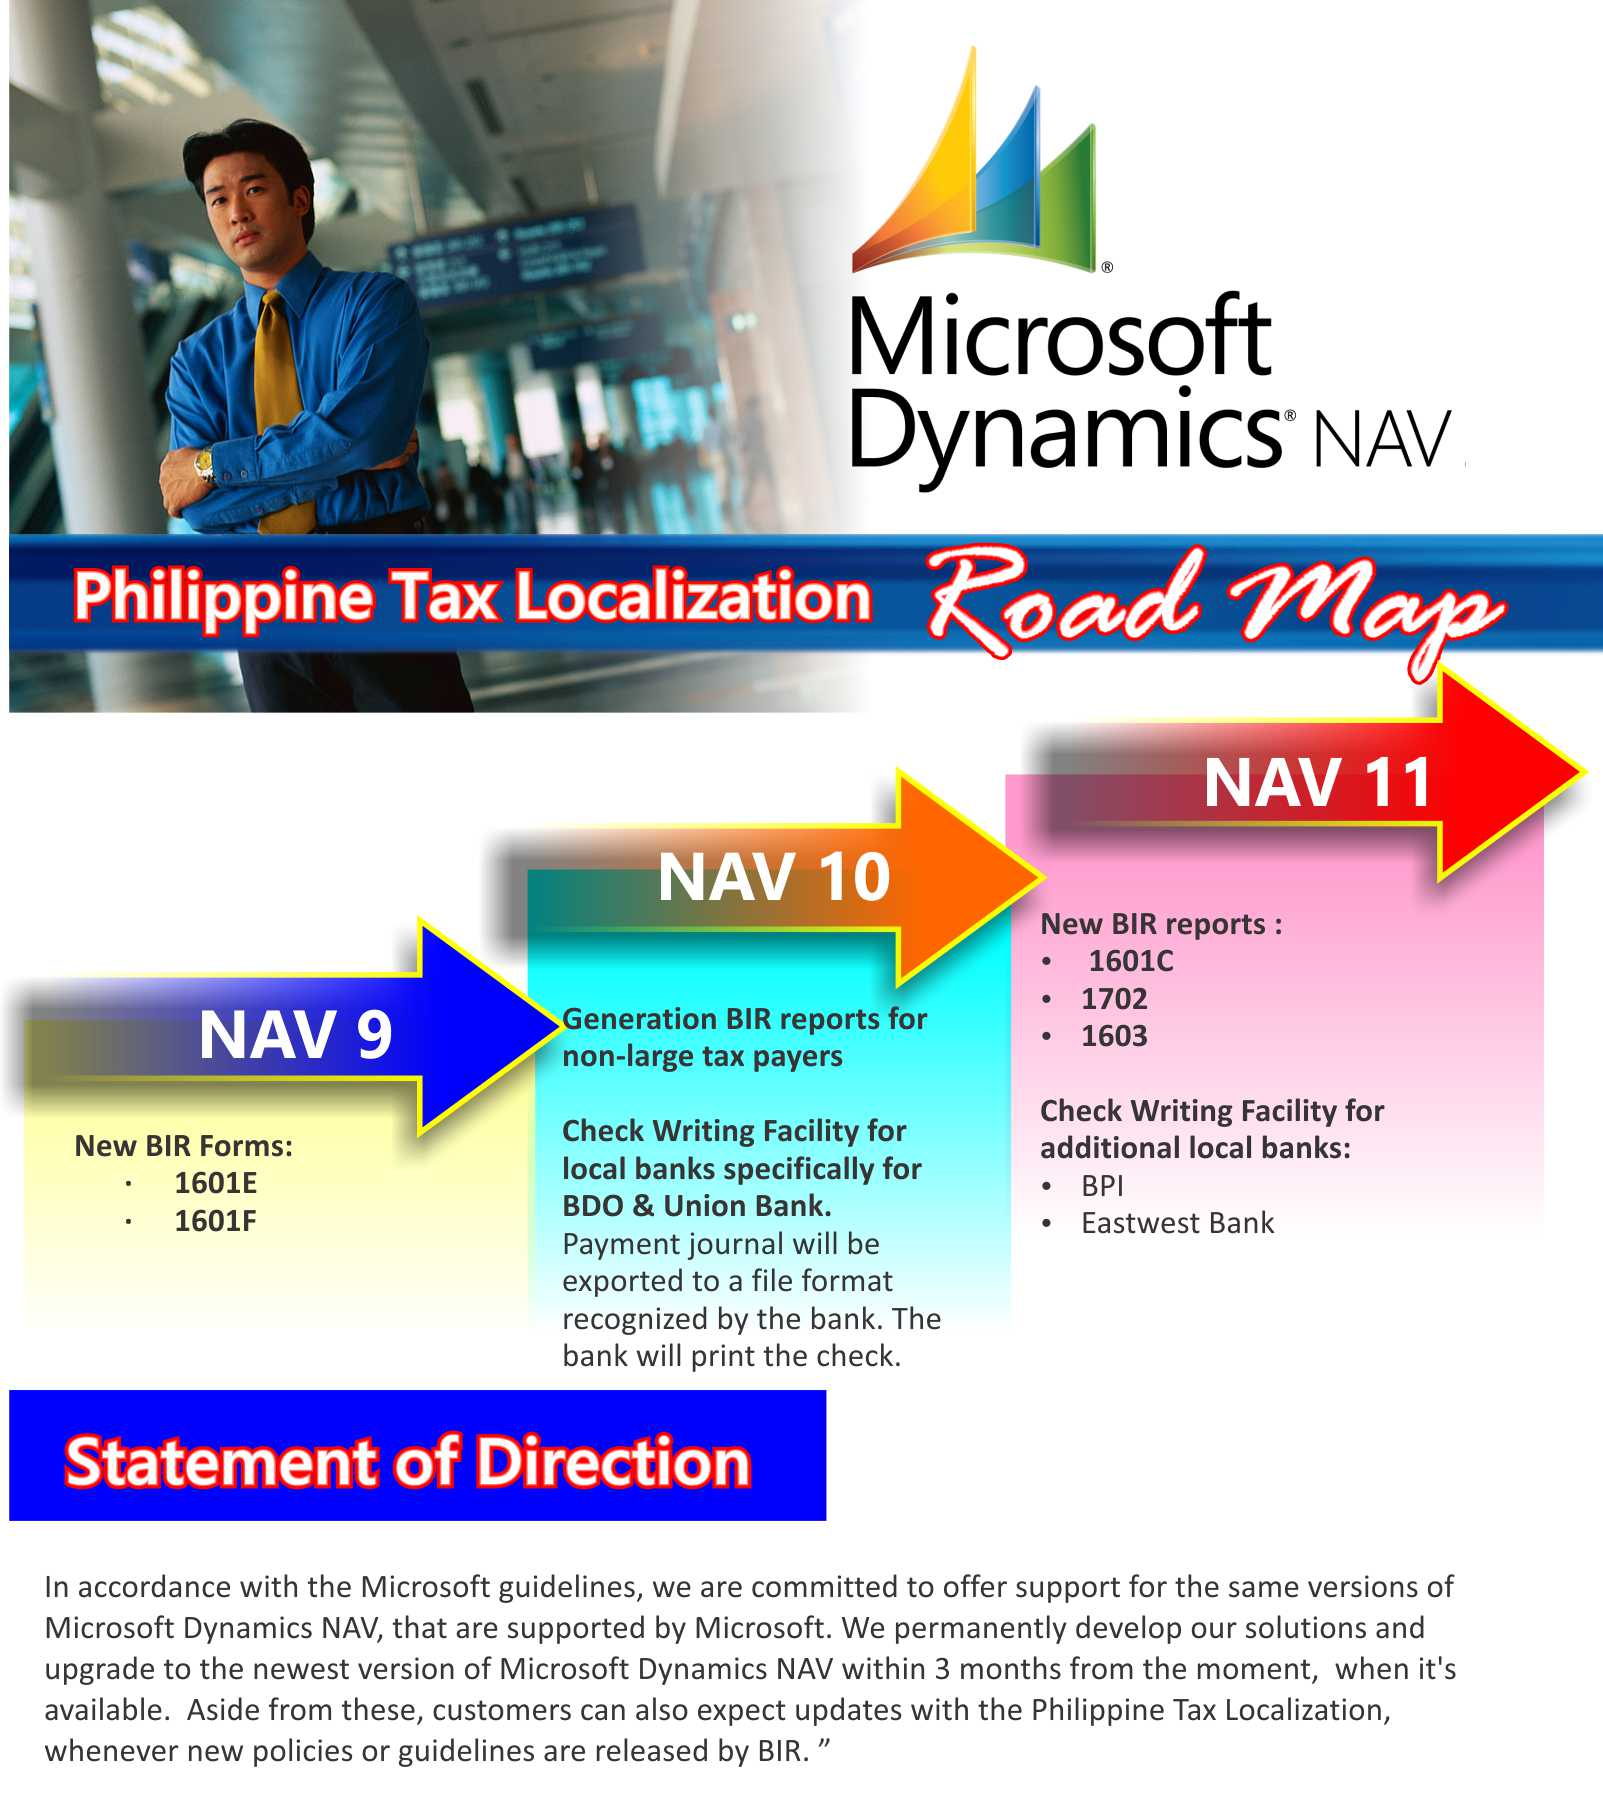 philtax roadmap 2016.jpg